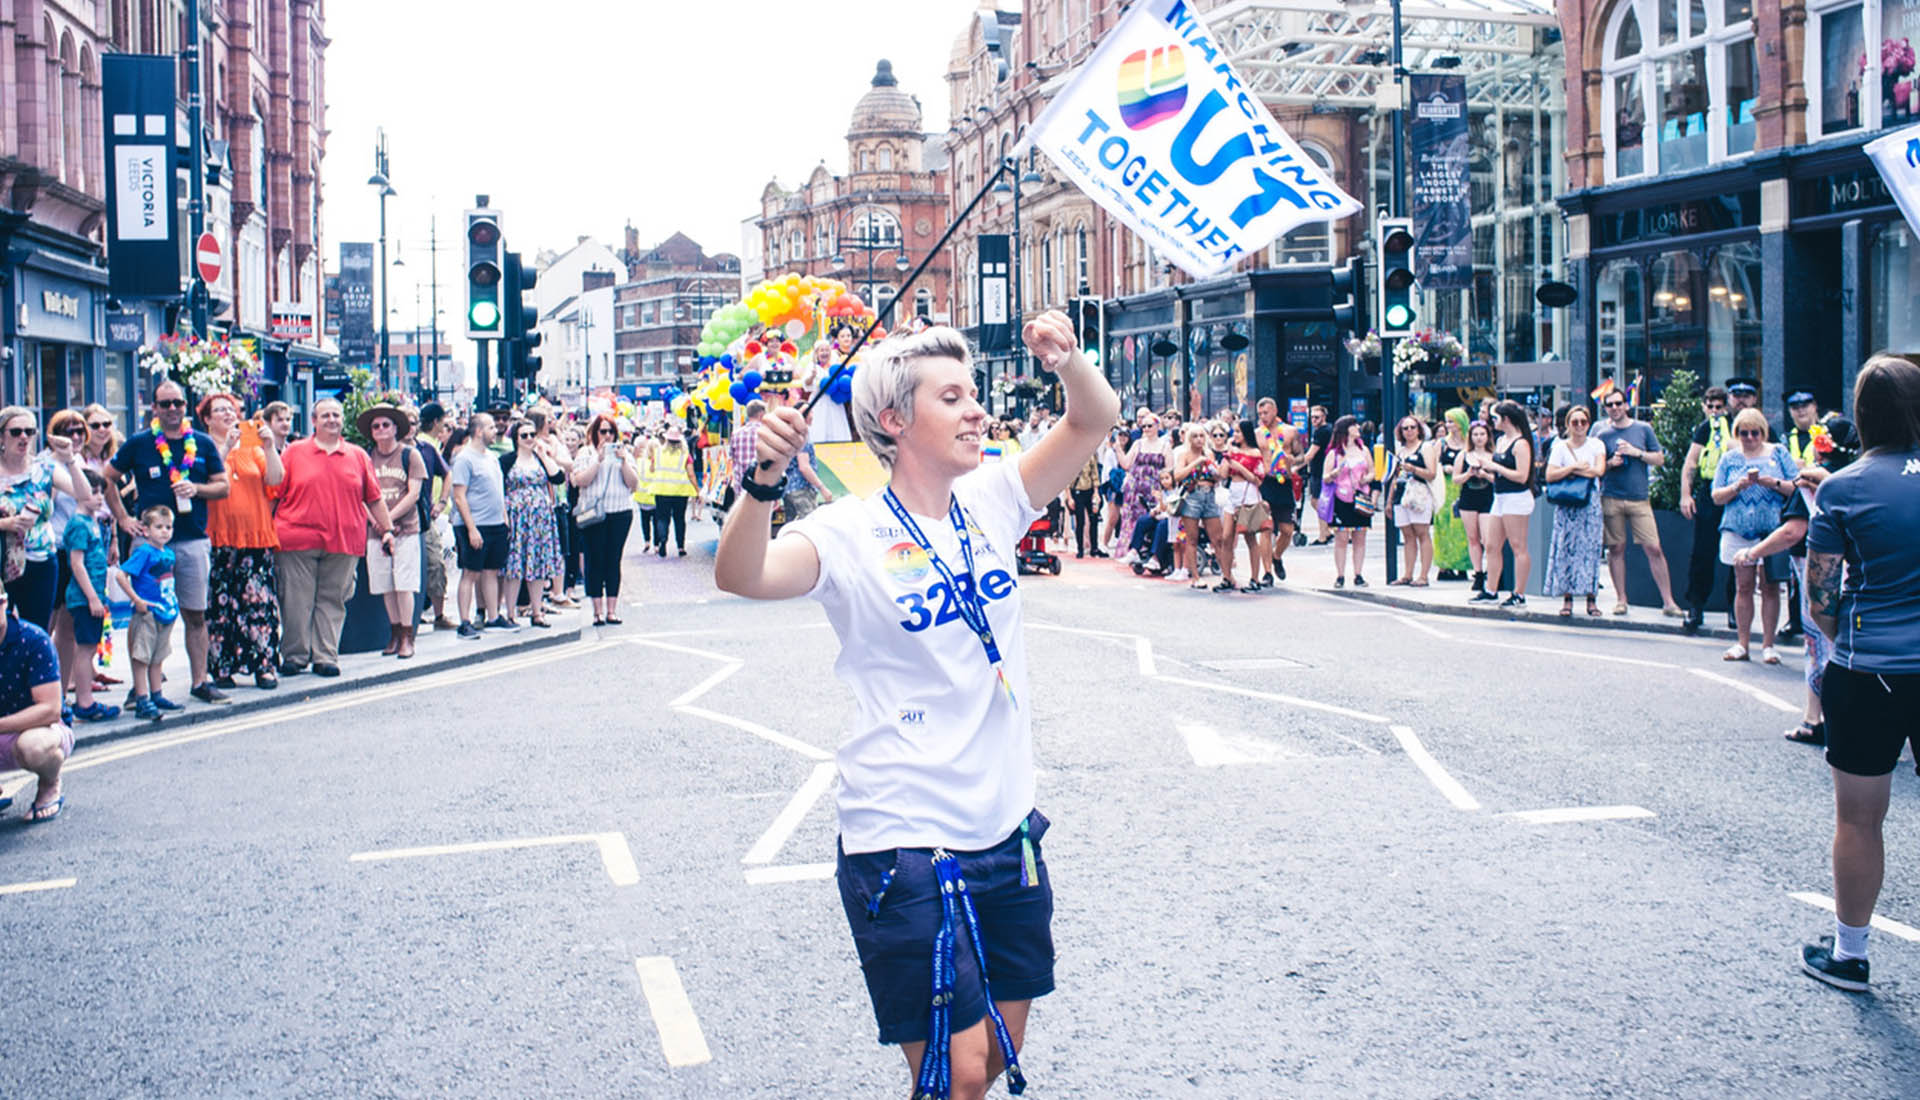 Leeds Marching On Together_0003_Marching Out Together - Pride-104.jpg